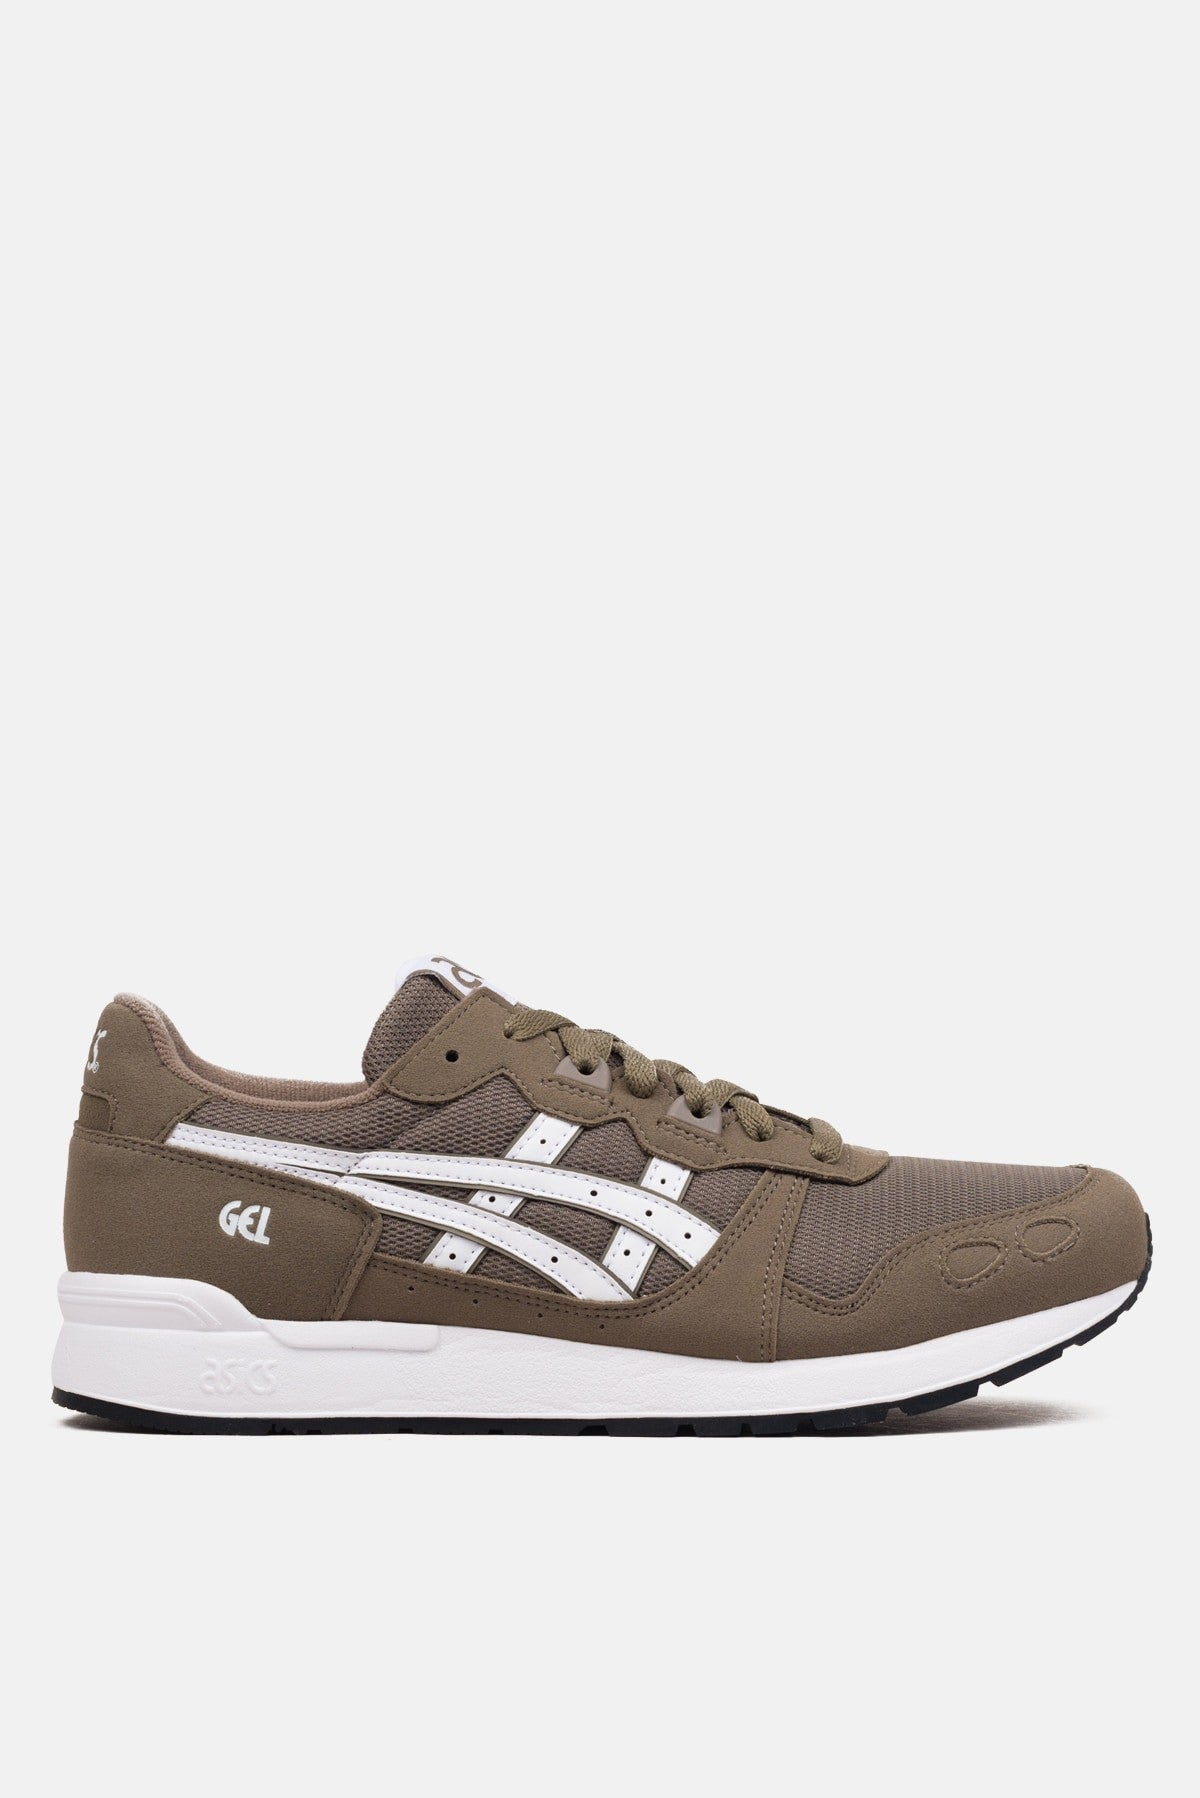 44a9d3b23c5 Asics Gel Lyte Shoes available from Priory